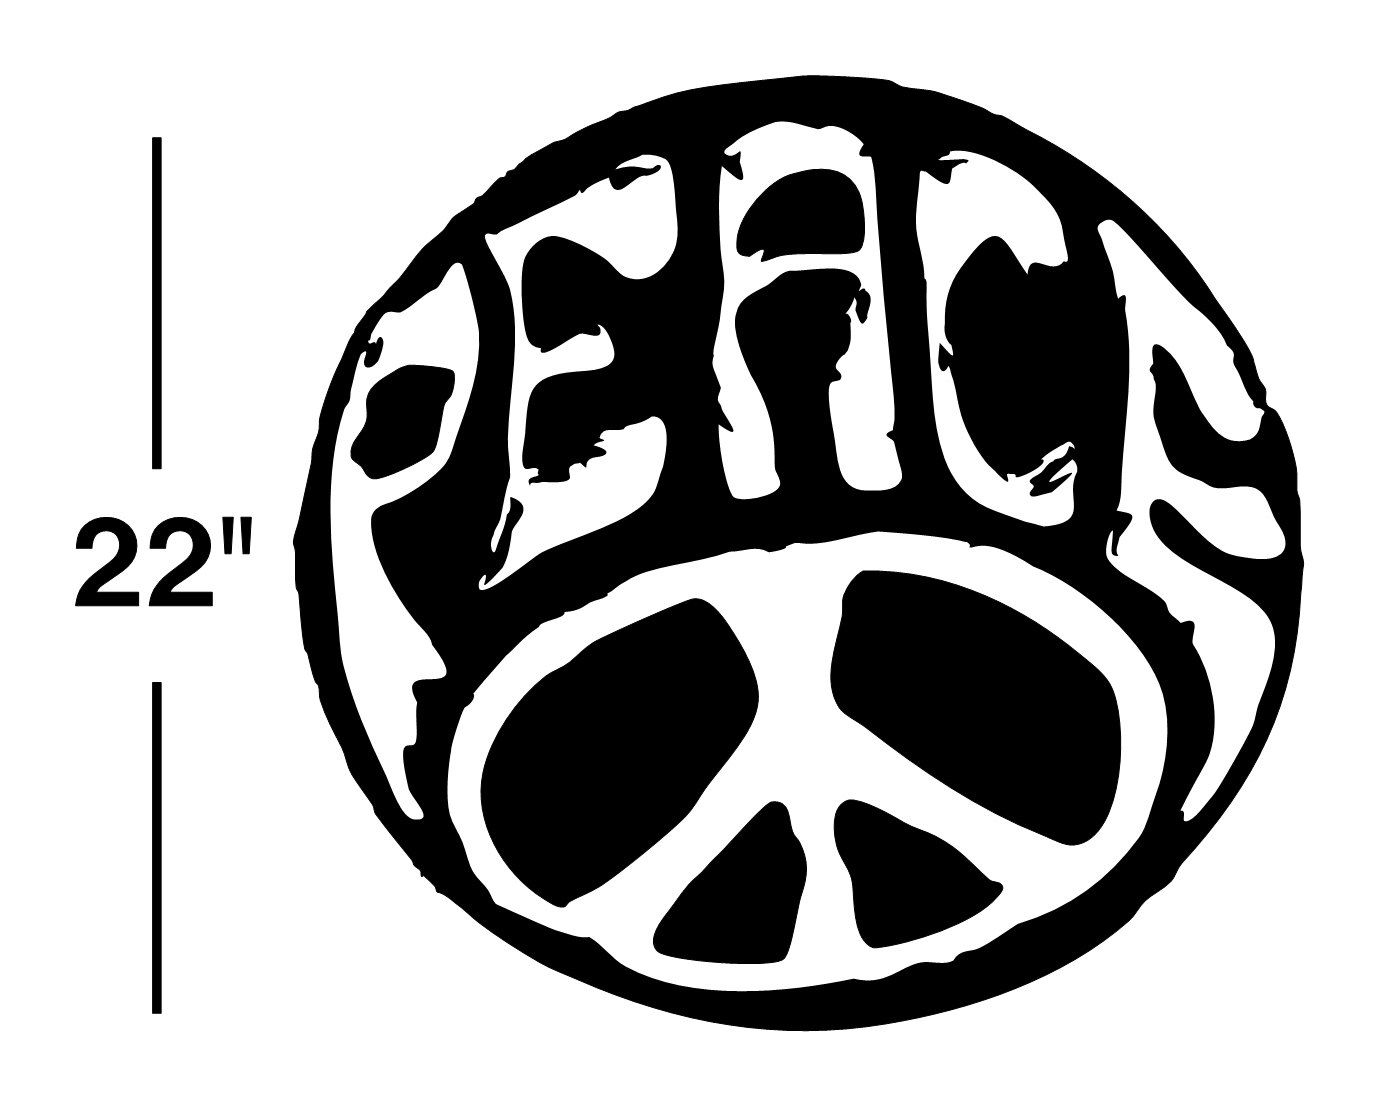 Peace Sign Bedroom Decor Peace Sign Decal Sticker Wall Art Car Graphics Room Decor Emo Goth